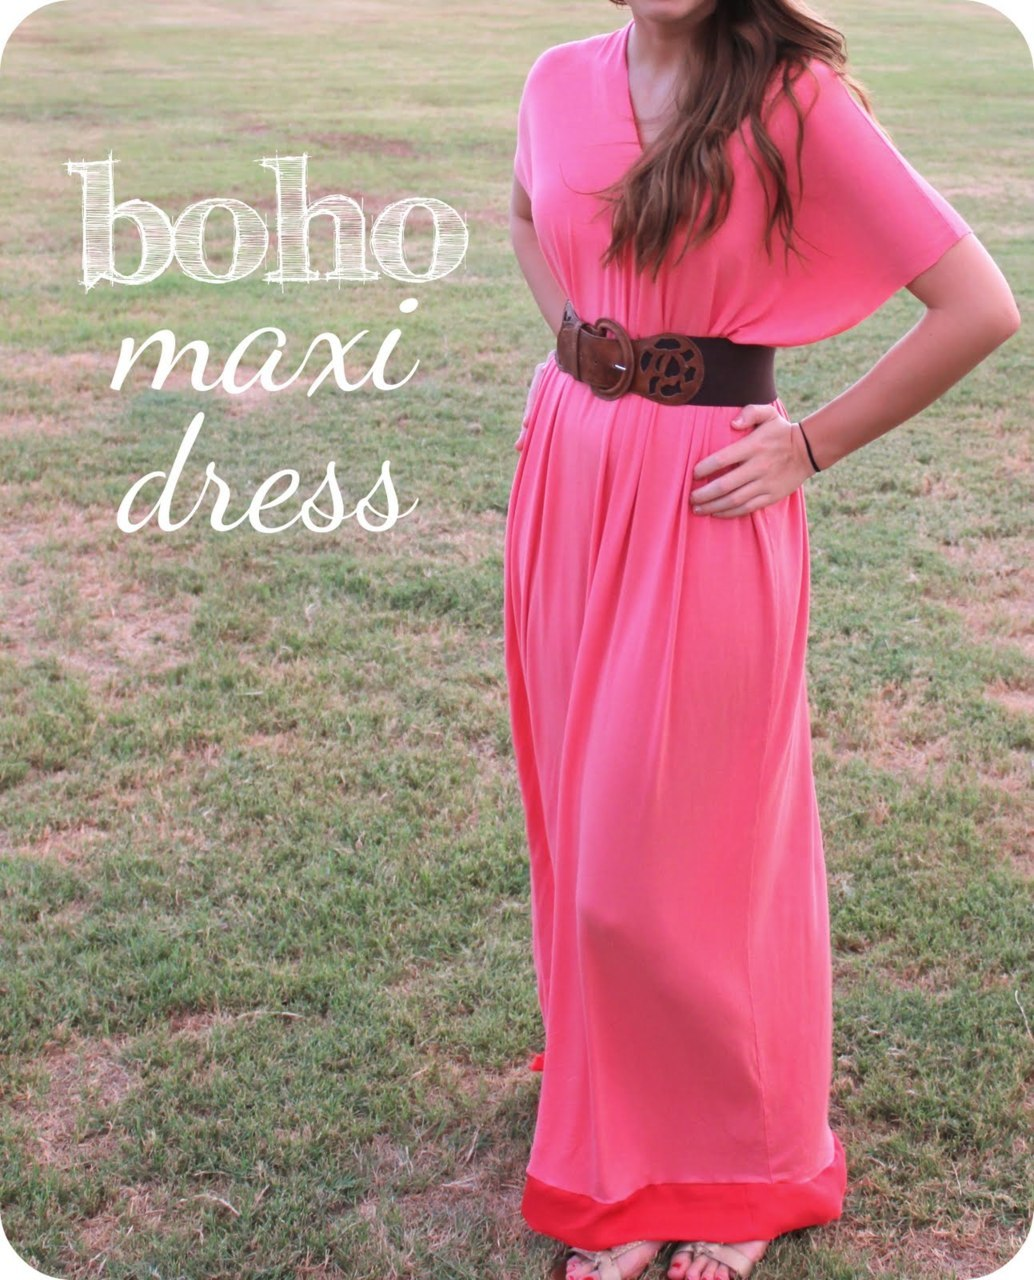 Boho Maxi Dress Tutorial | Sweet Verbena Looking through my closet on Friday, I realised I have a lot of maxi dresses. I have no idea if they look any good on me, but they're my favourite piece of clothing! I like dresses and I prefer things that cover my legs. But it can be hard to find plus size maxis that don't have giant flowers or weirdo hippie prints on them. This is a super easy sewing project, plus you can do as Sweet Verbena has done and buy white fabric and dye it the colour you like. I think I might even sew on some lace… to the fabric store!